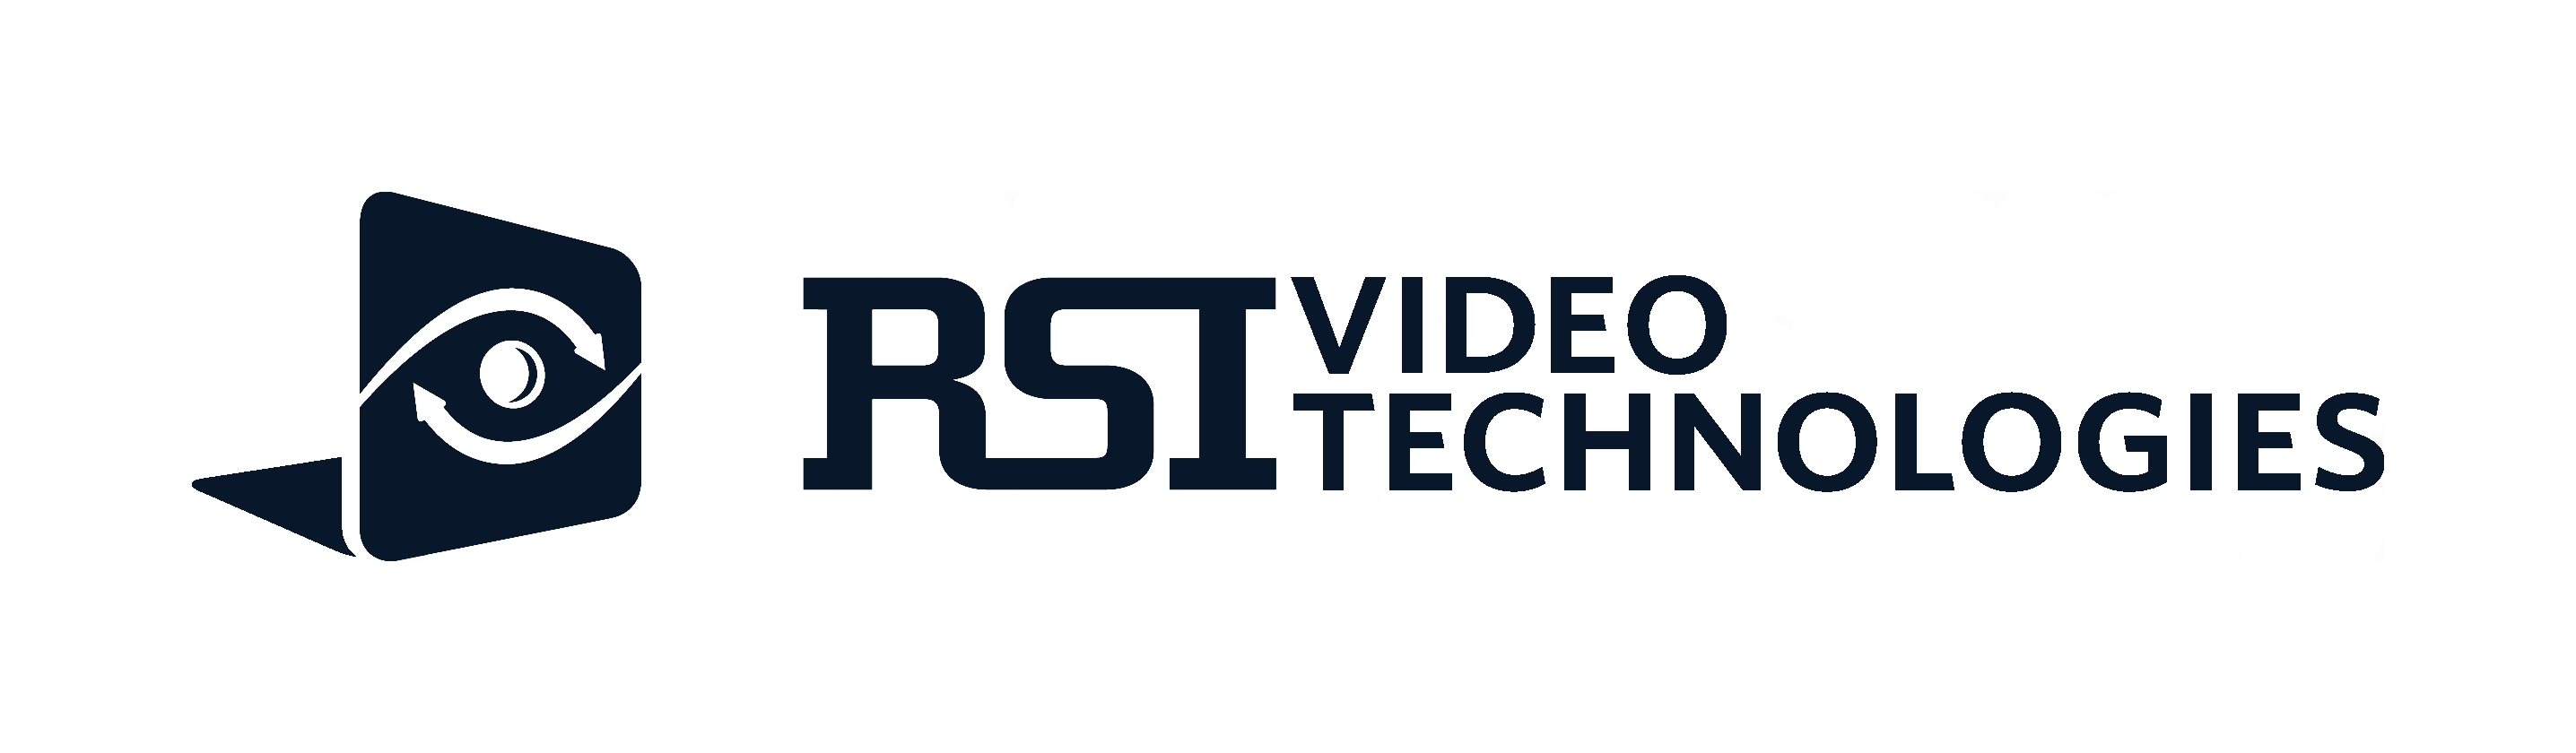 RSI Video Technologies logo